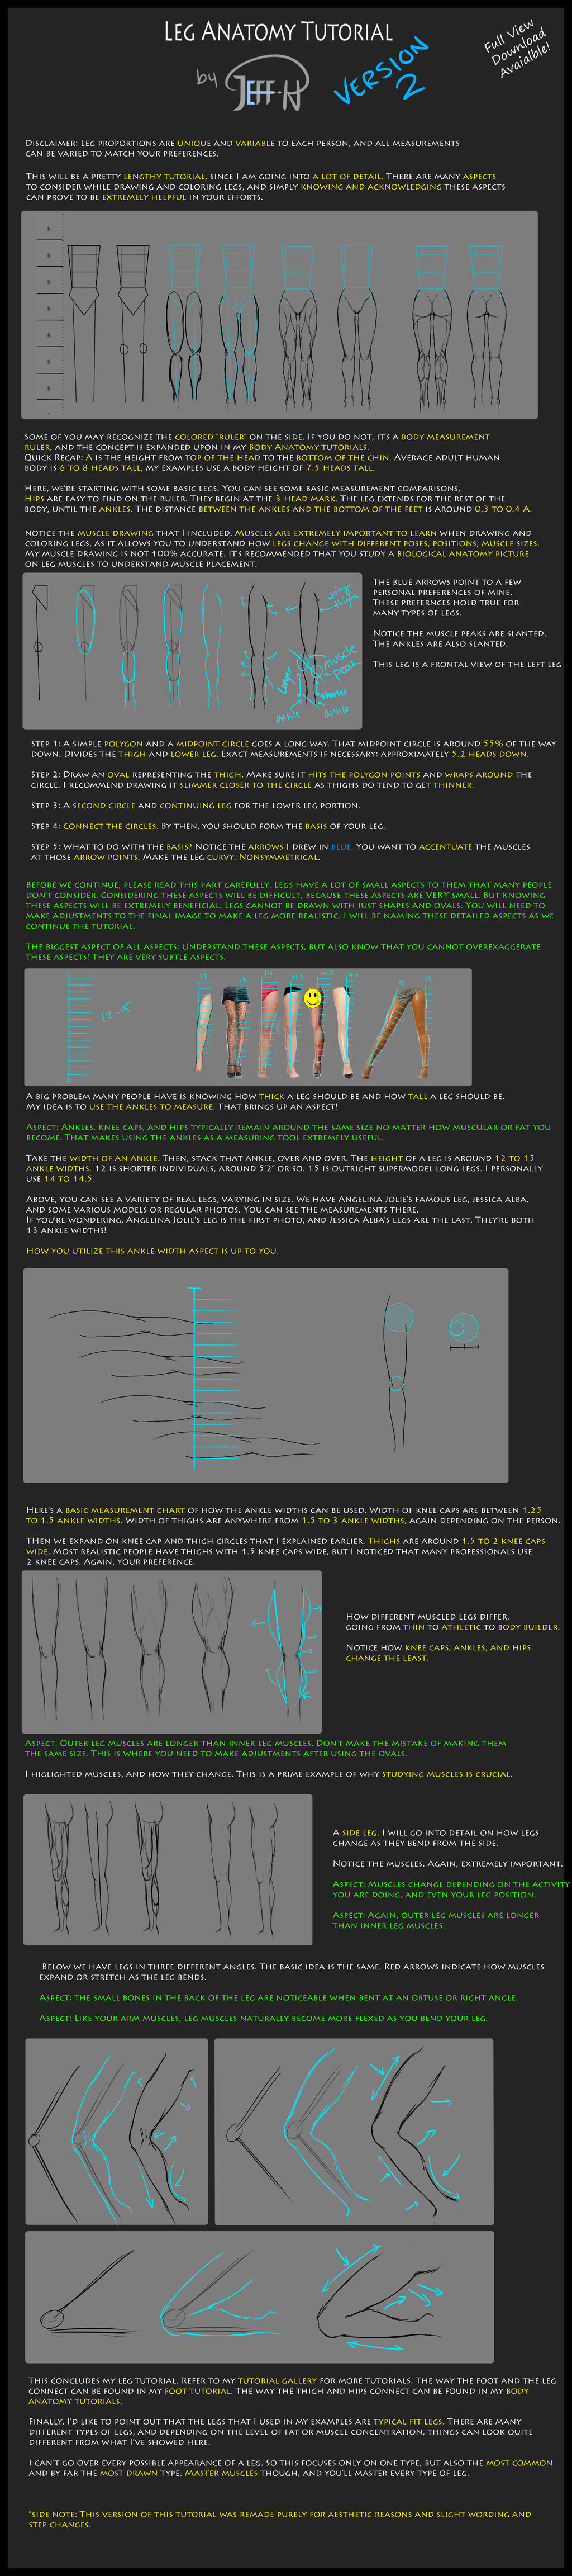 Leg Anatomy Tutorial (Version 2) by aupin